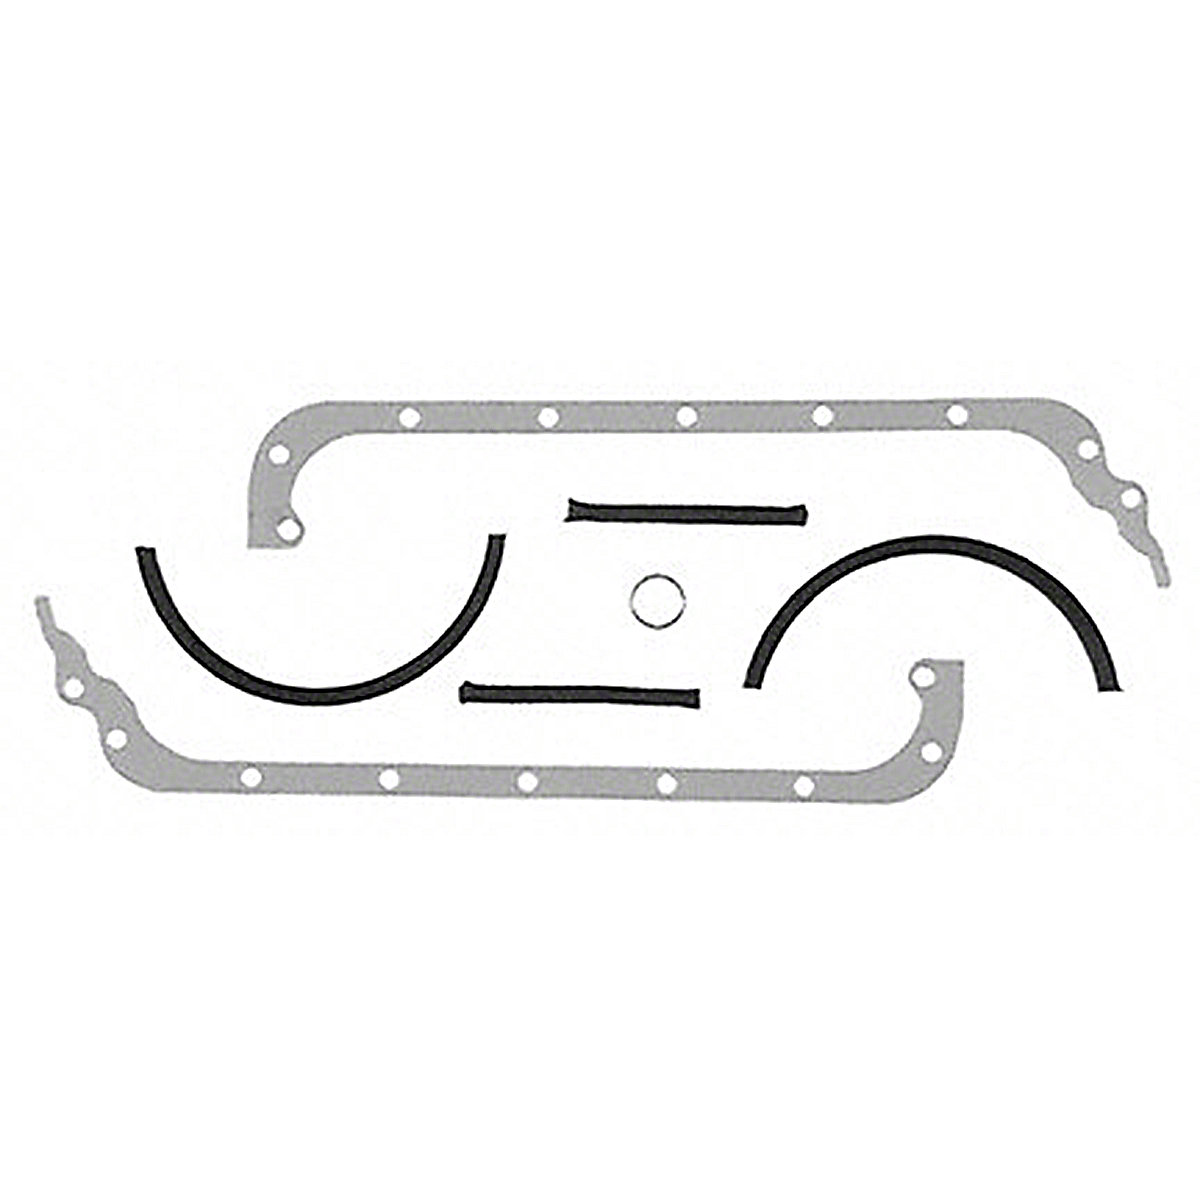 Oil Pan Gasket Set For Massey Harris: Colt 21, Mustang 23, 101 jr, 102 jr, 20, 22, 30, 81, 82.